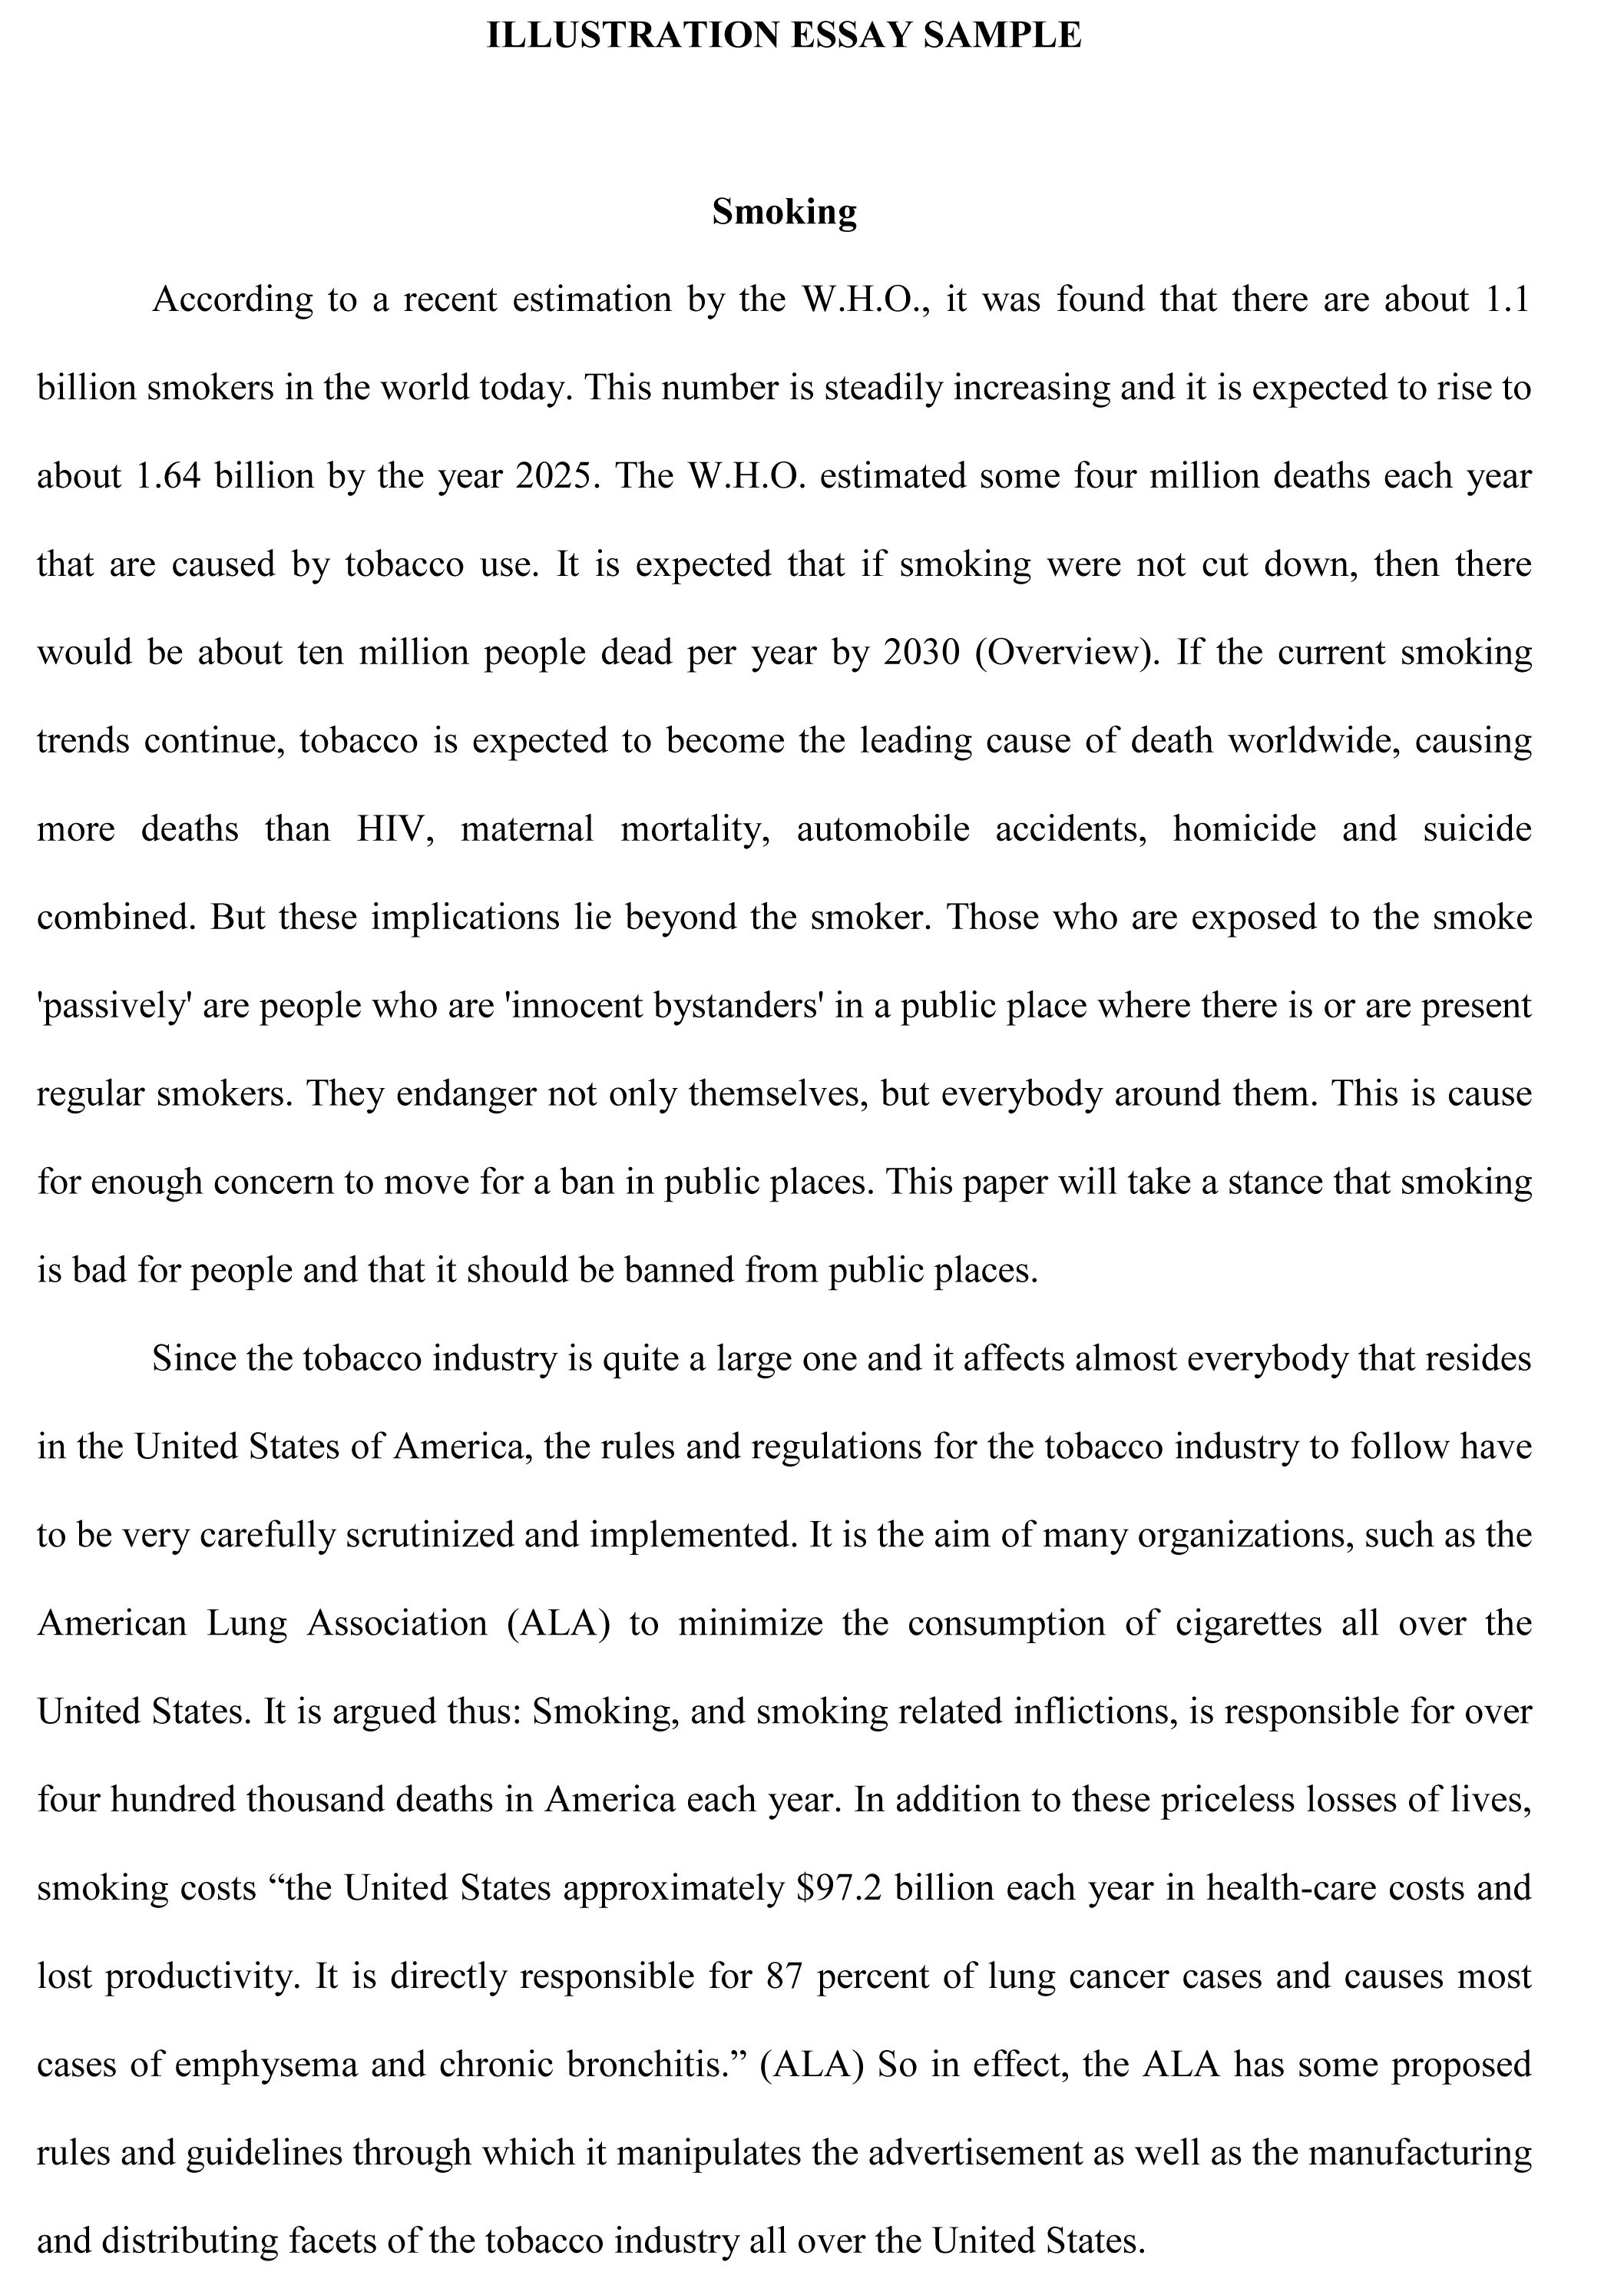 015 Essay Example Formal Illustration Sample Stunning Short Letter Full